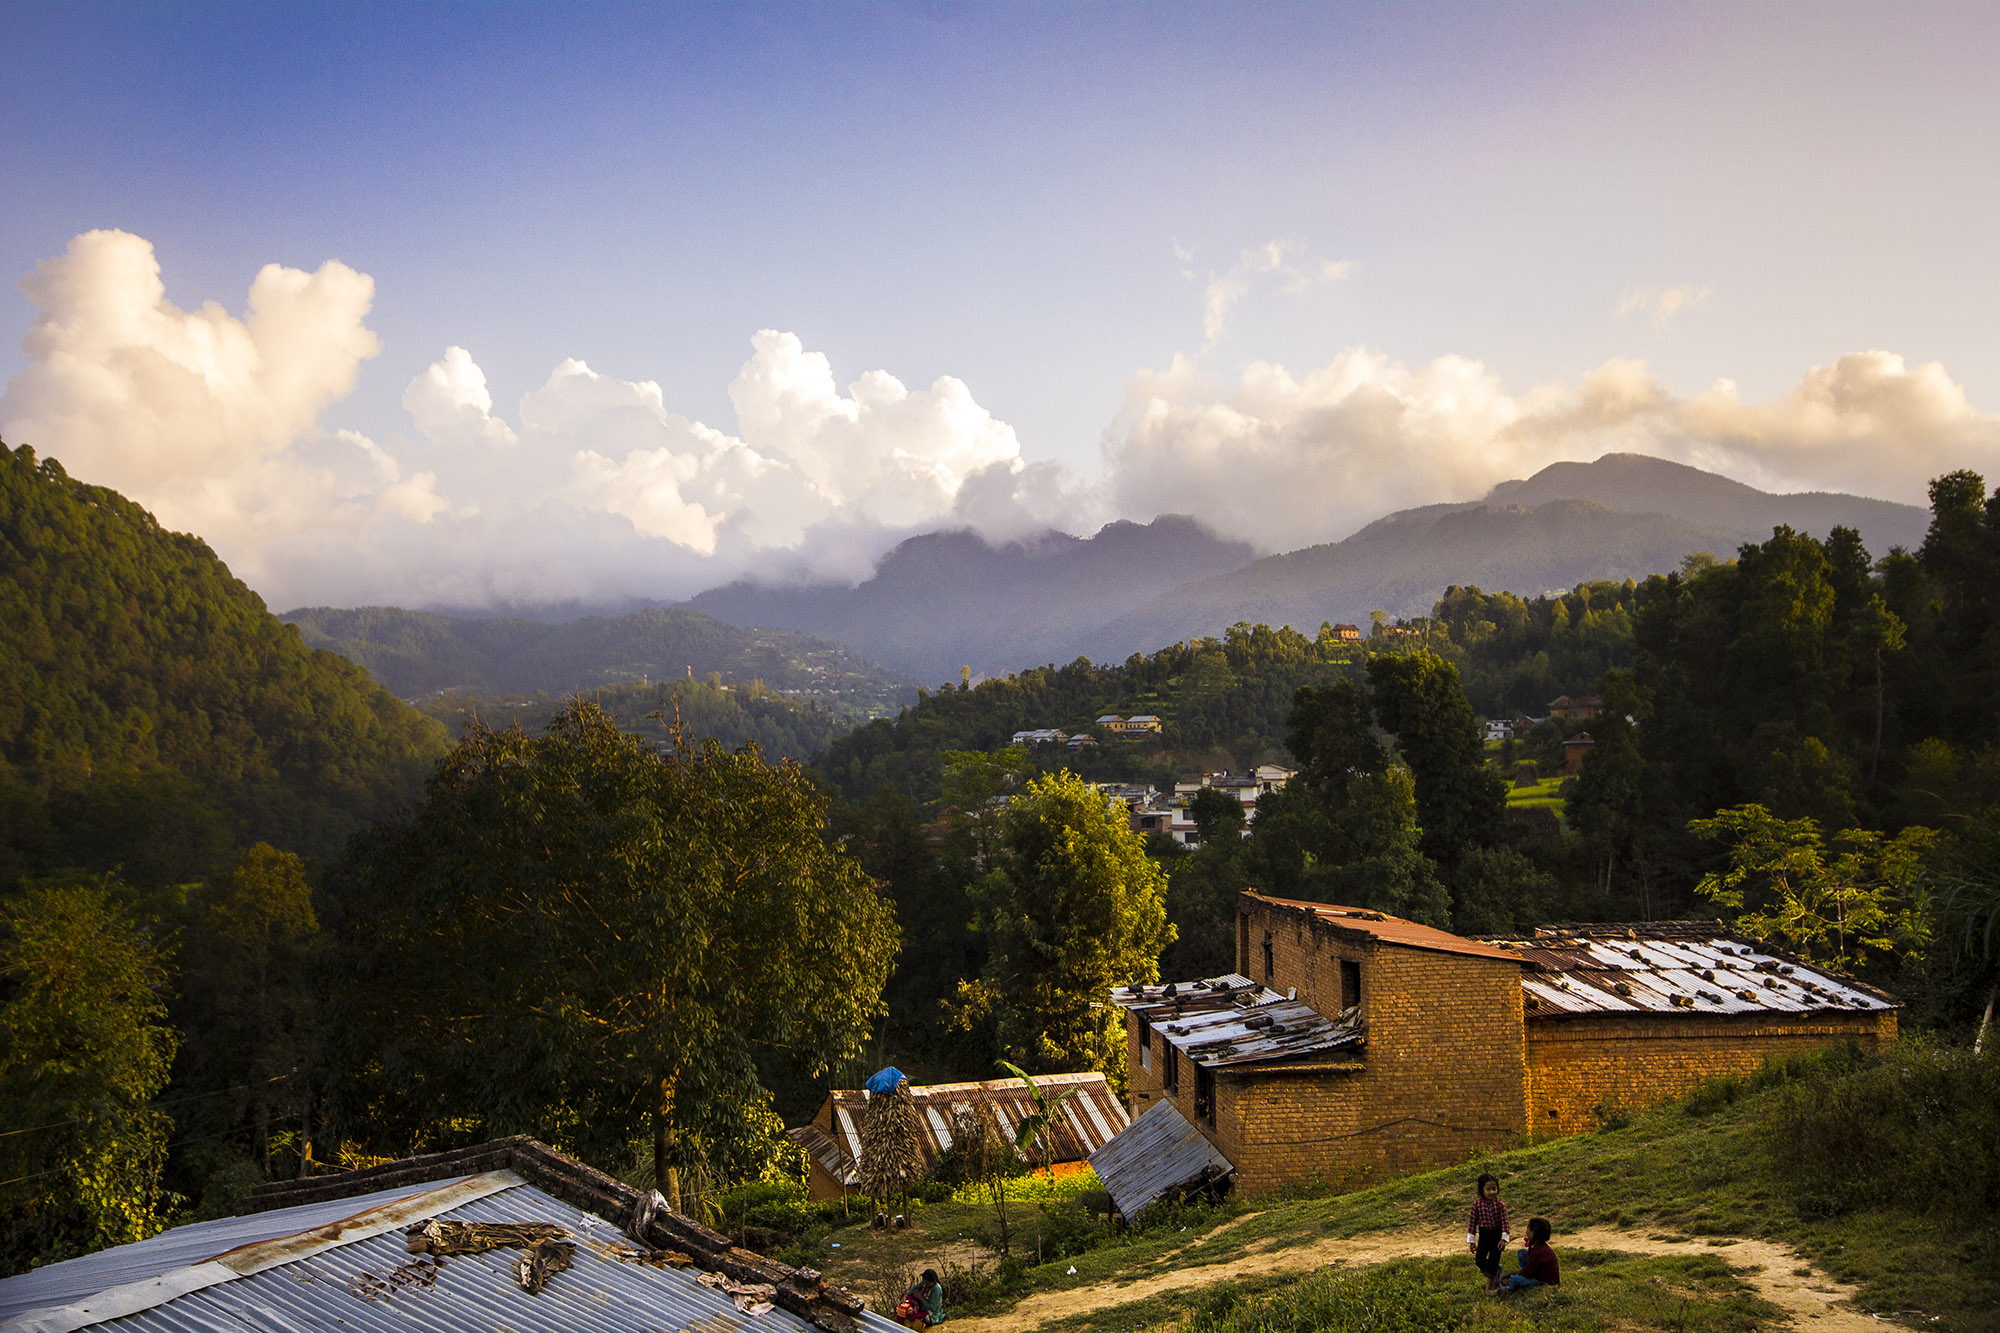 Nepal Expedition Part 2 - In the morning we set off for the Shree Ganesh Primary School in the Kathmandu valley. As we bounced around the rocky terrain in the mini bus we were all taken in by the fantastic landscapes that Nepal had to offer, from the vast mountains to its stunning farm land.....